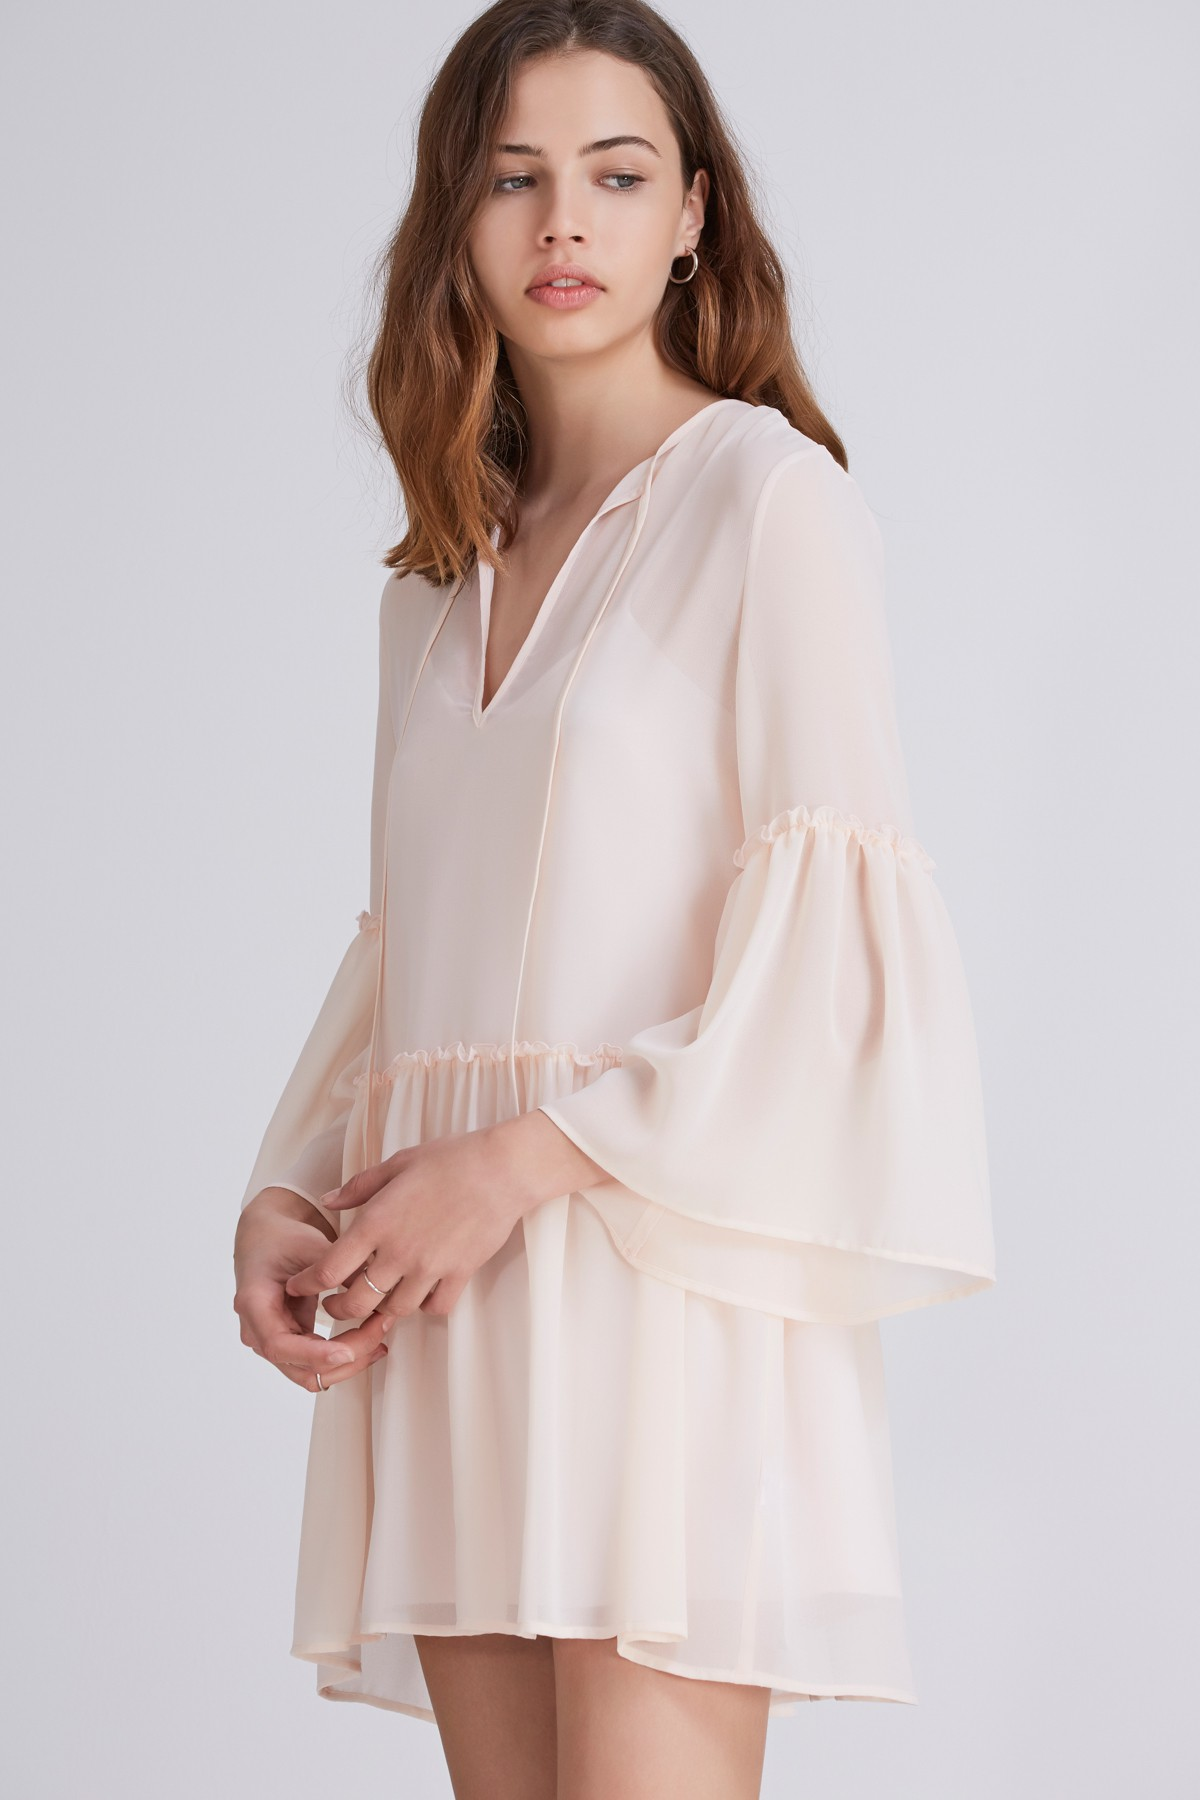 The Fifth Voyage L/S Dress.